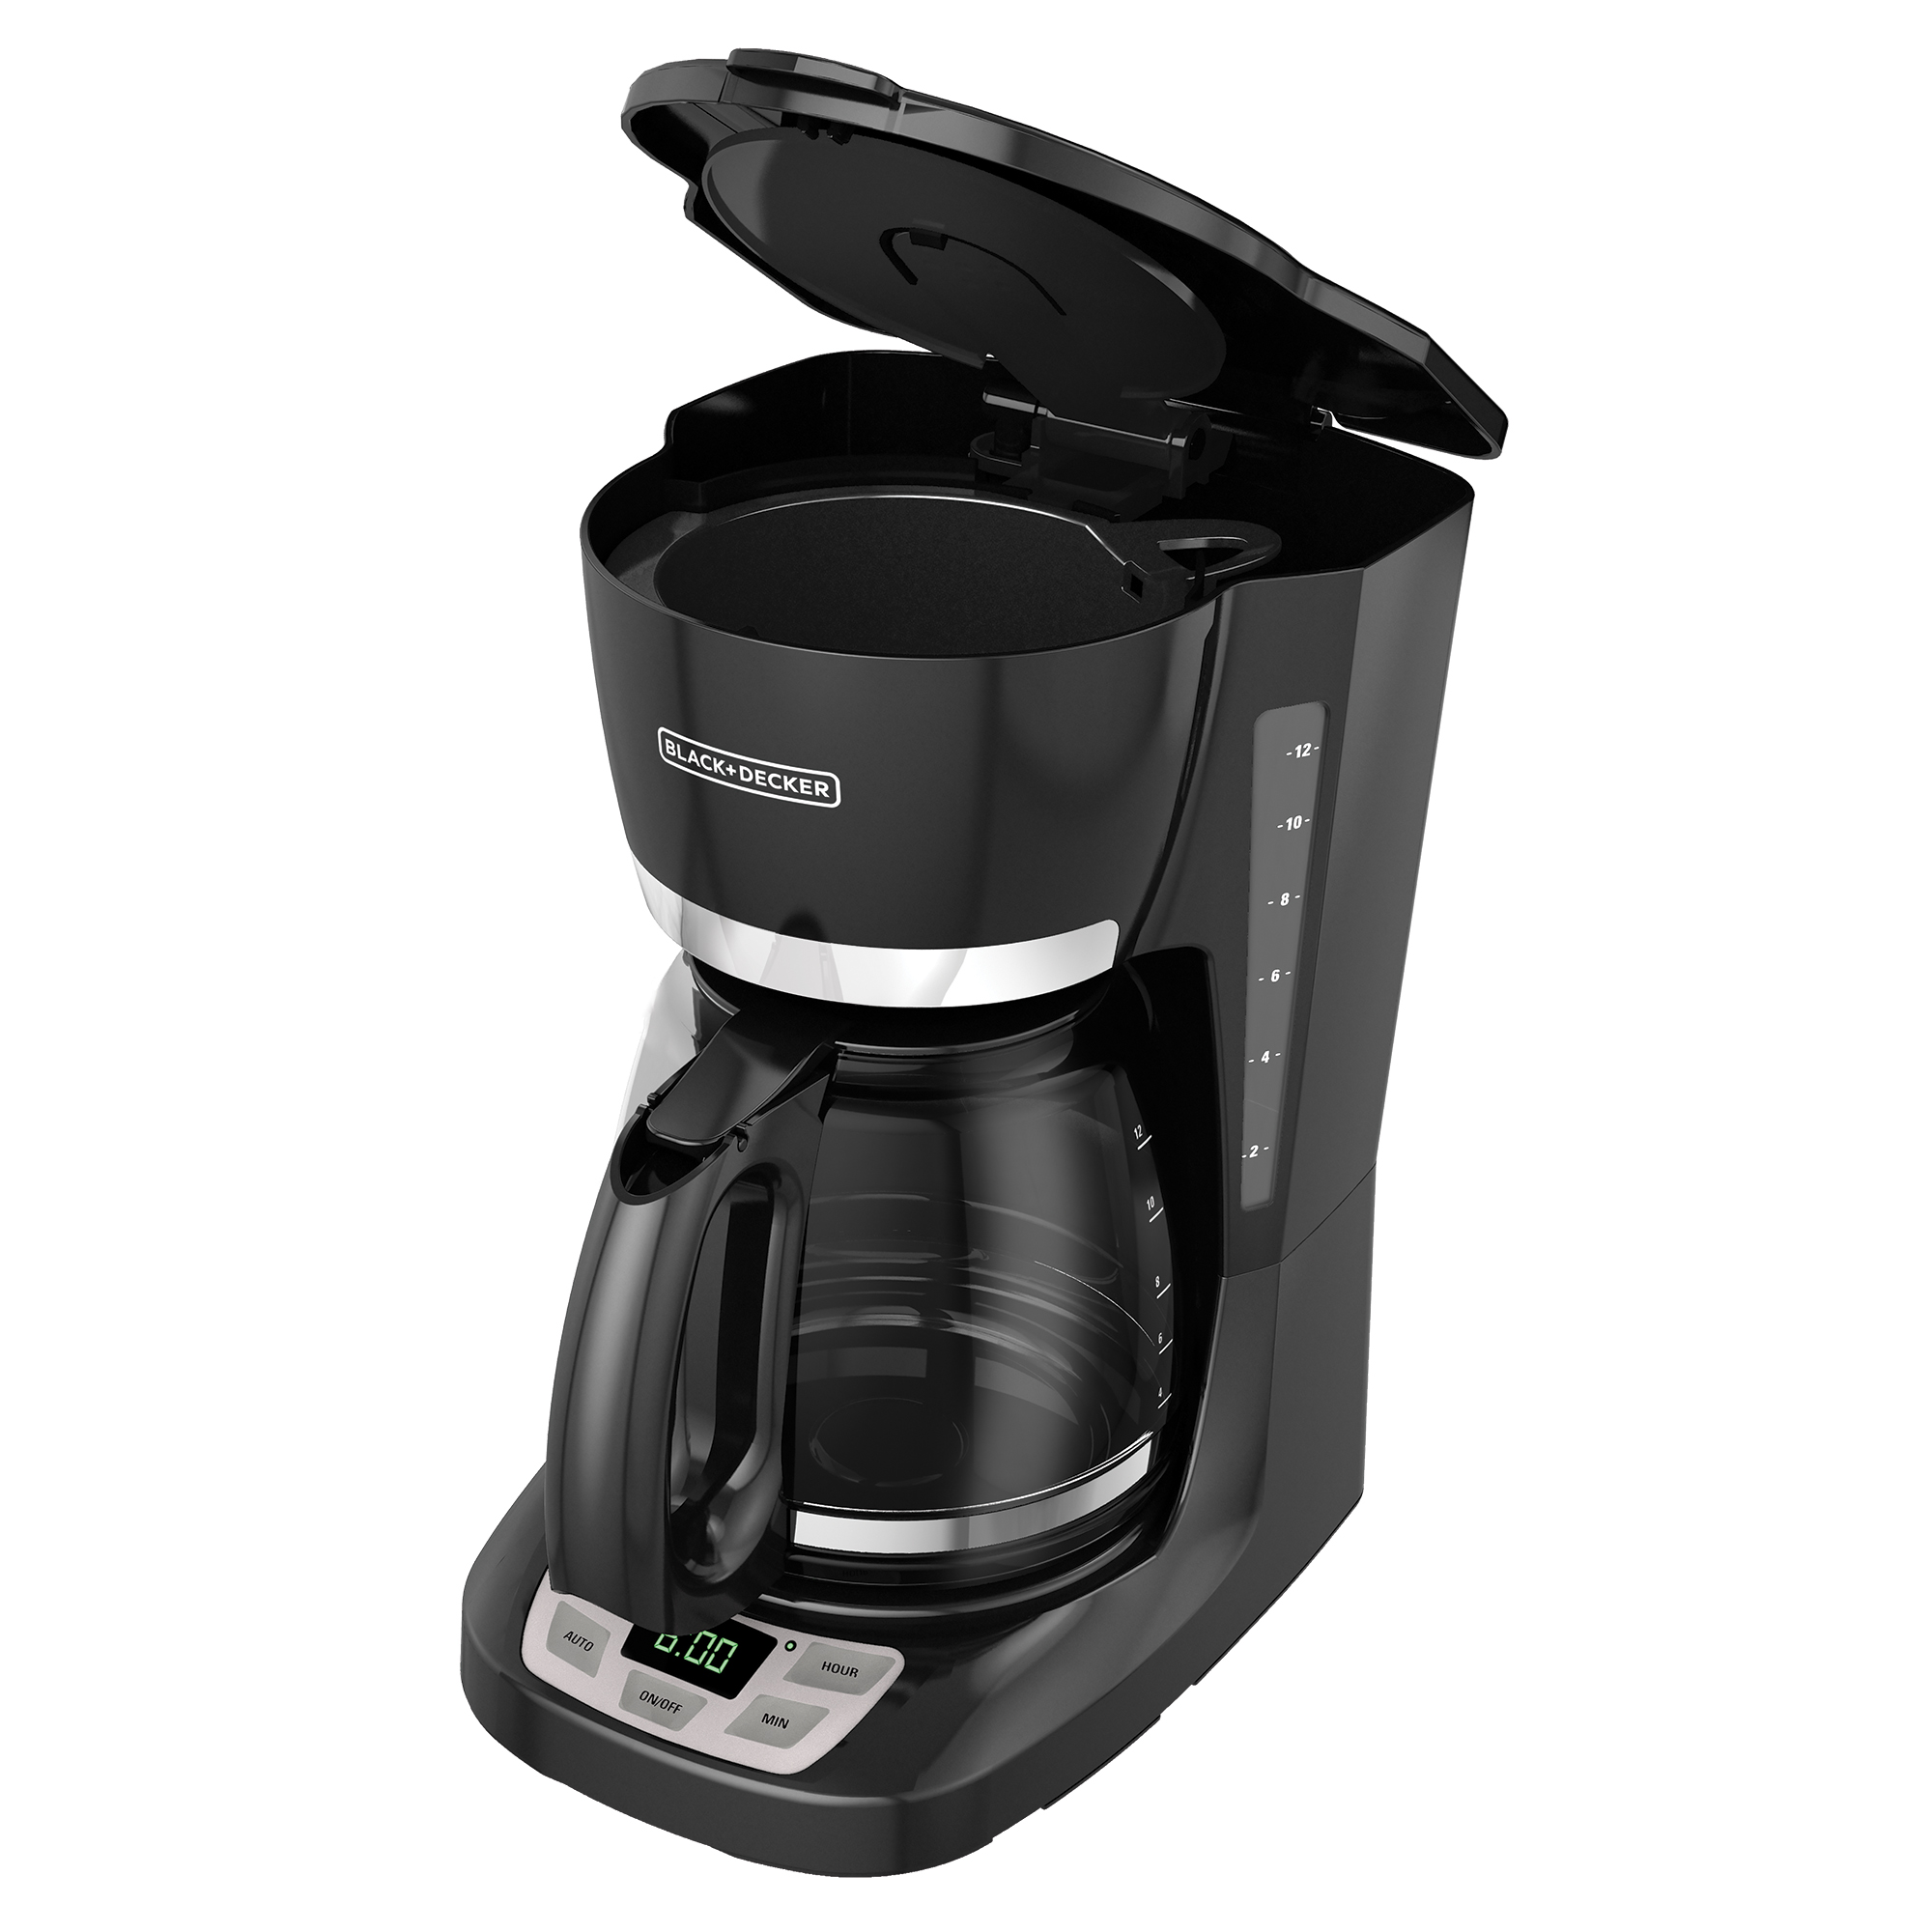 BLACK+DECKER 12-Cup QuickTouch Programmable Coffeemaker, Black, CM1060B